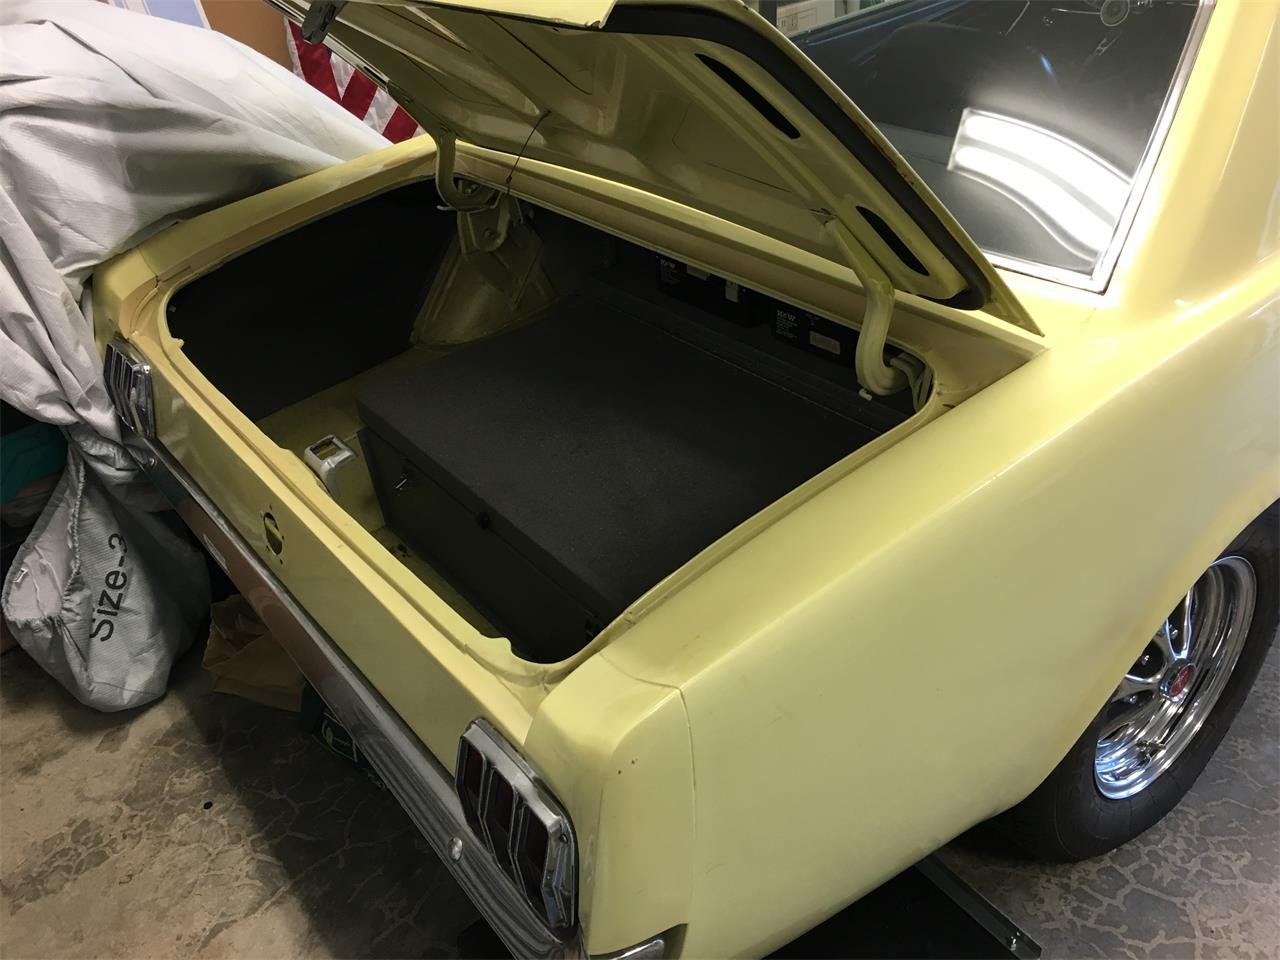 Large Picture of Classic '65 Mustang located in Oregon - $24,500.00 Offered by a Private Seller - N5AG